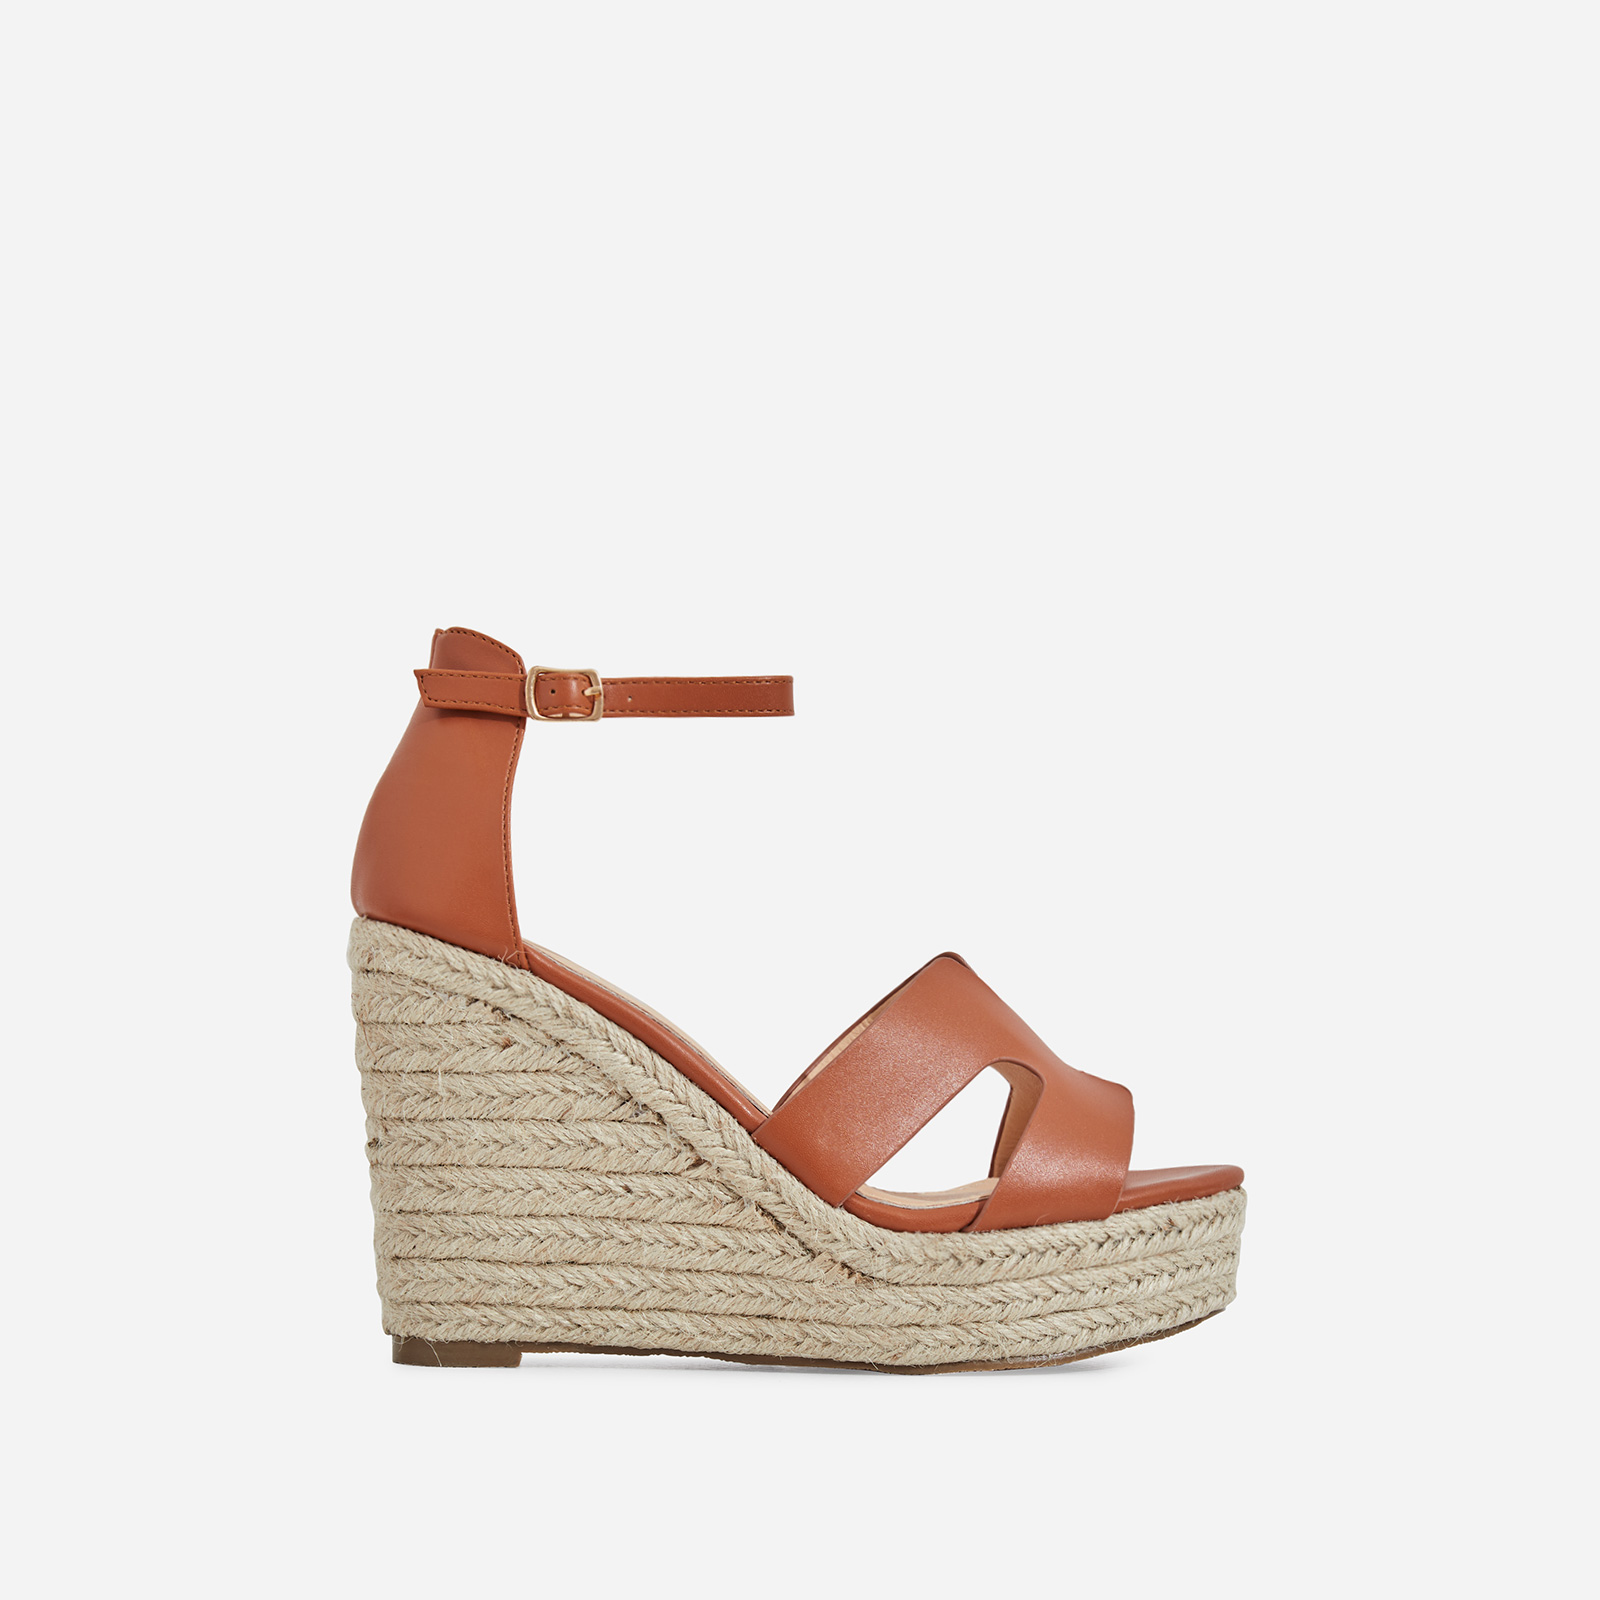 Kayson Platform Espadrille Wedge Block Heel In Tan Faux Leather